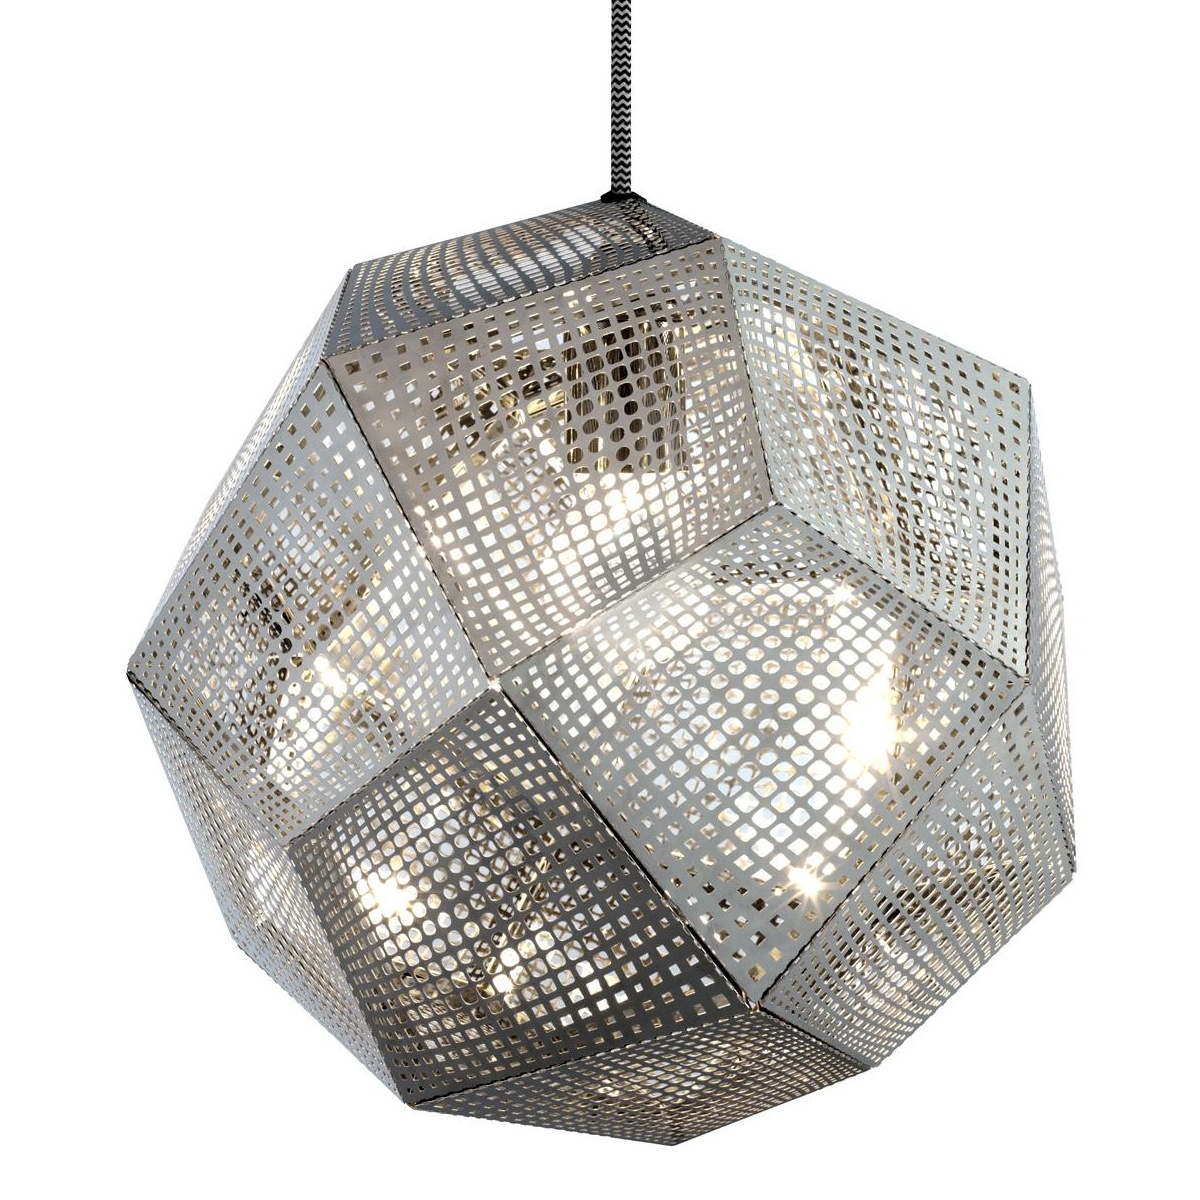 Tom Dixon - Etch Shade Suspension Lamp Ã32cm - stainless steel